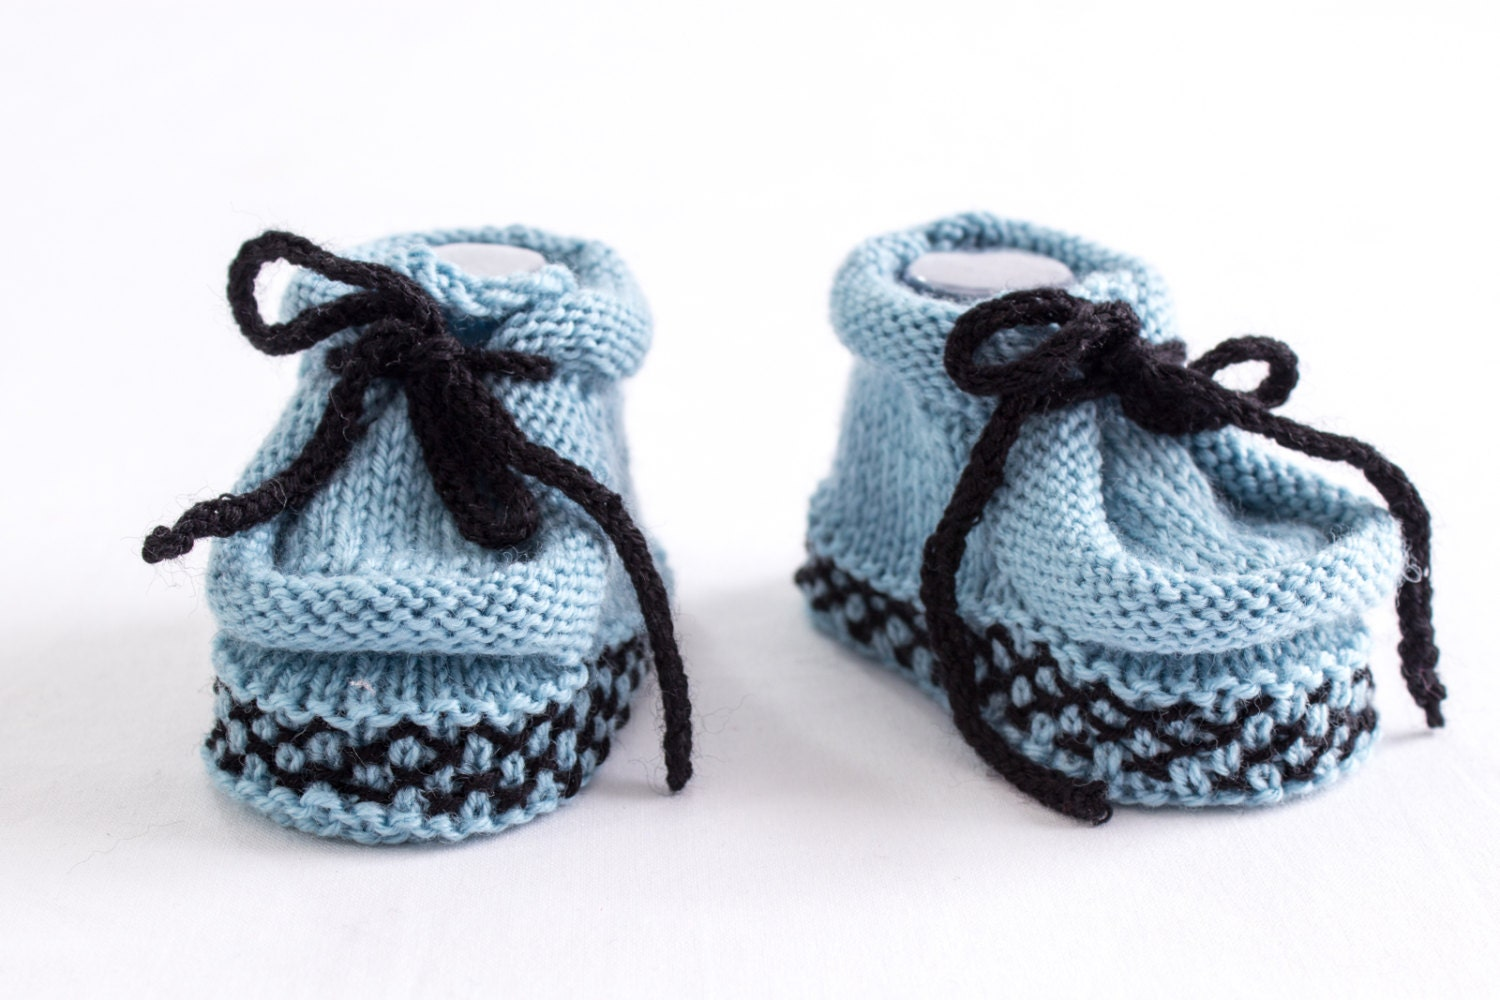 KNITTING PATTERN Knit Baby Moccasin Booties Boy Moccasin